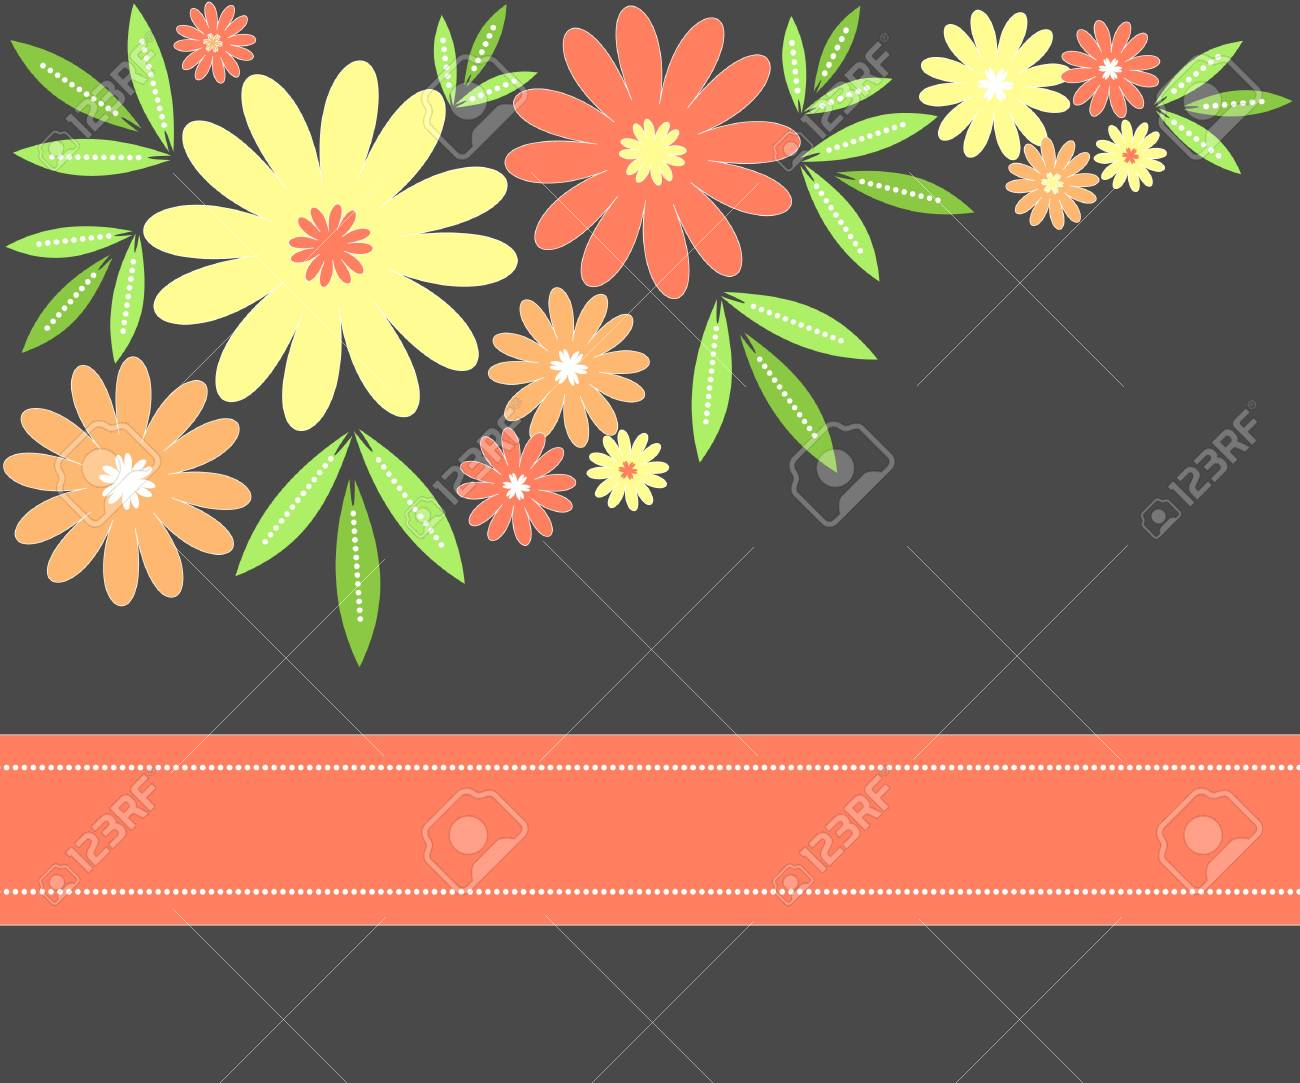 Flowers and leaves background Stock Photo - 9607608